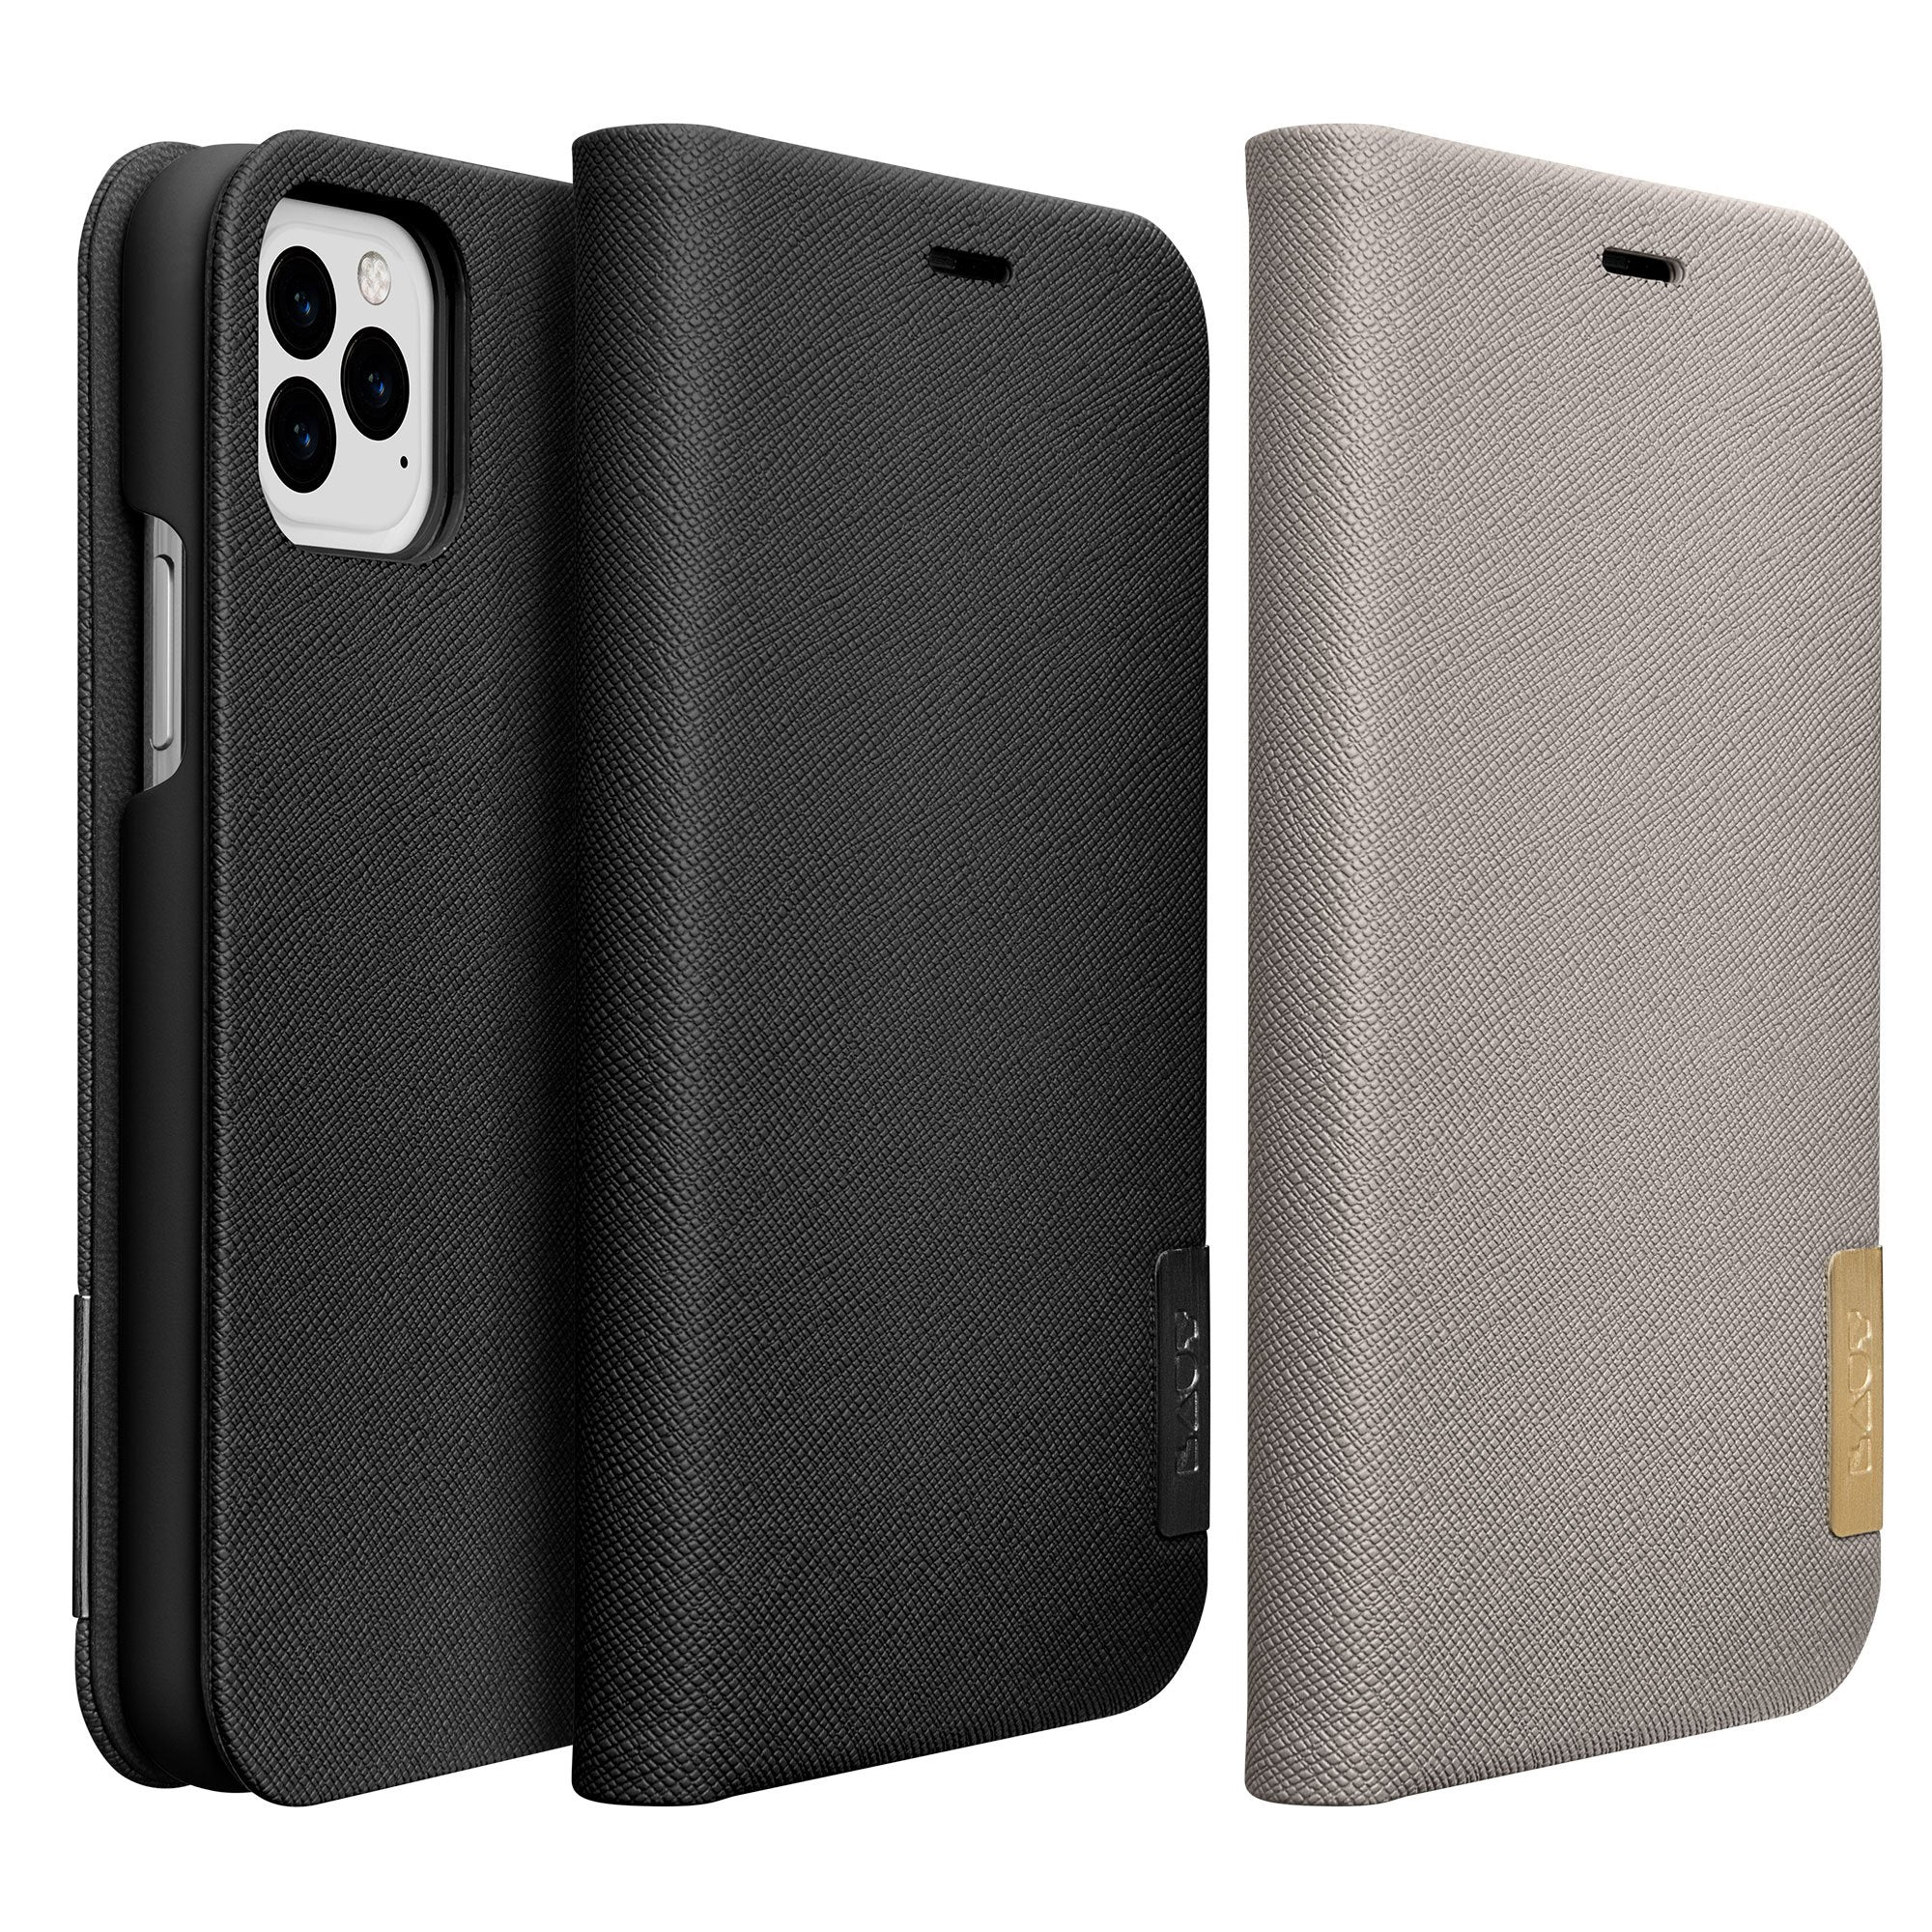 LAUT-PRESTIGE Folio for iPhone 11 Series-Case-iPhone 11 / iPhone 11 Pro / iPhone 11 Pro Max